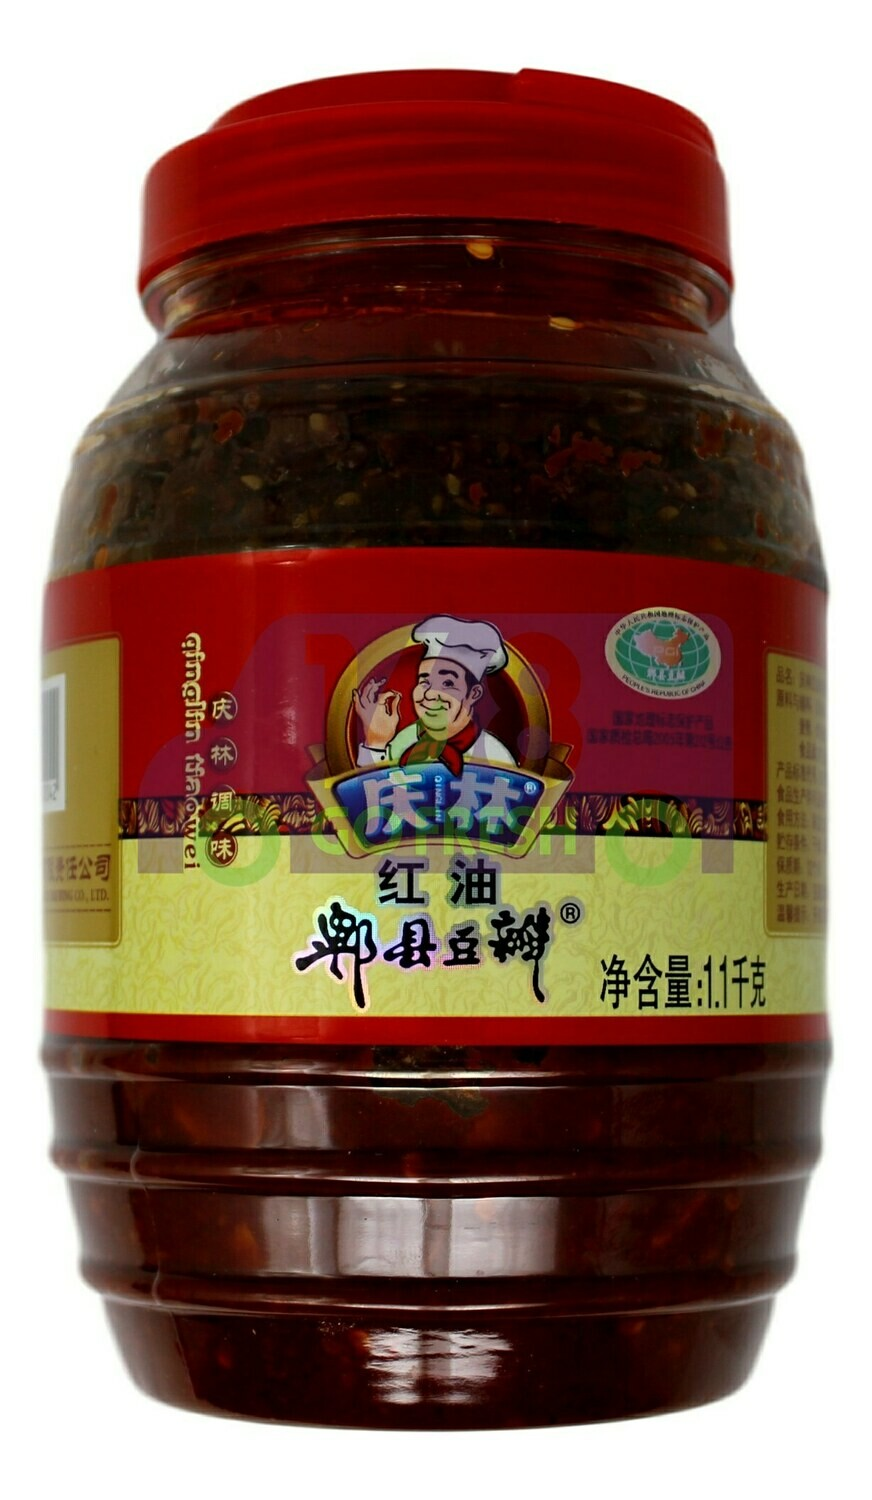 BROAD BEANPASTE CHIII OIL 庆林 郫县豆瓣 (1.1KG)